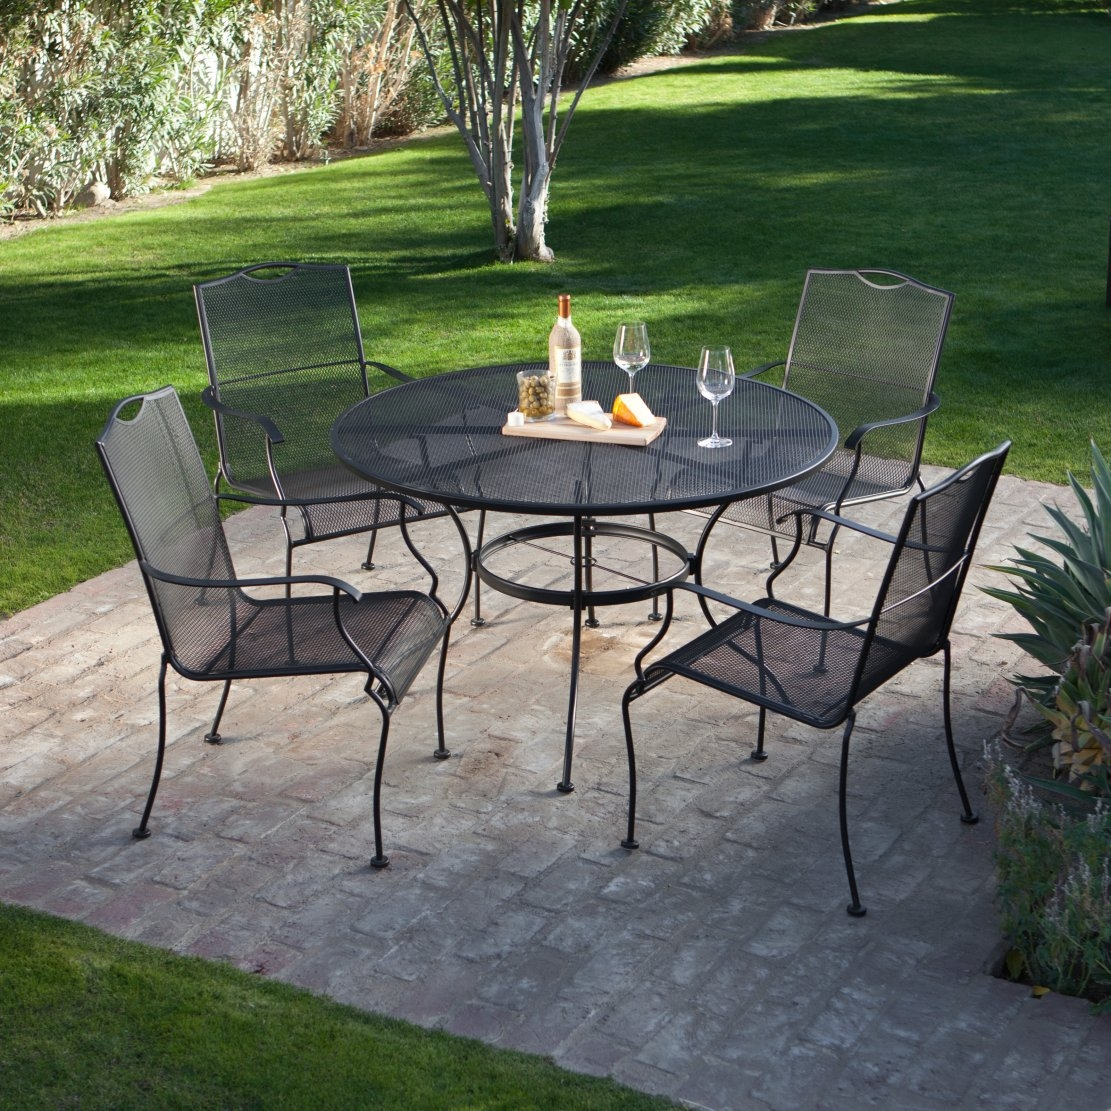 5 Piece Wrought Iron Patio Furniture